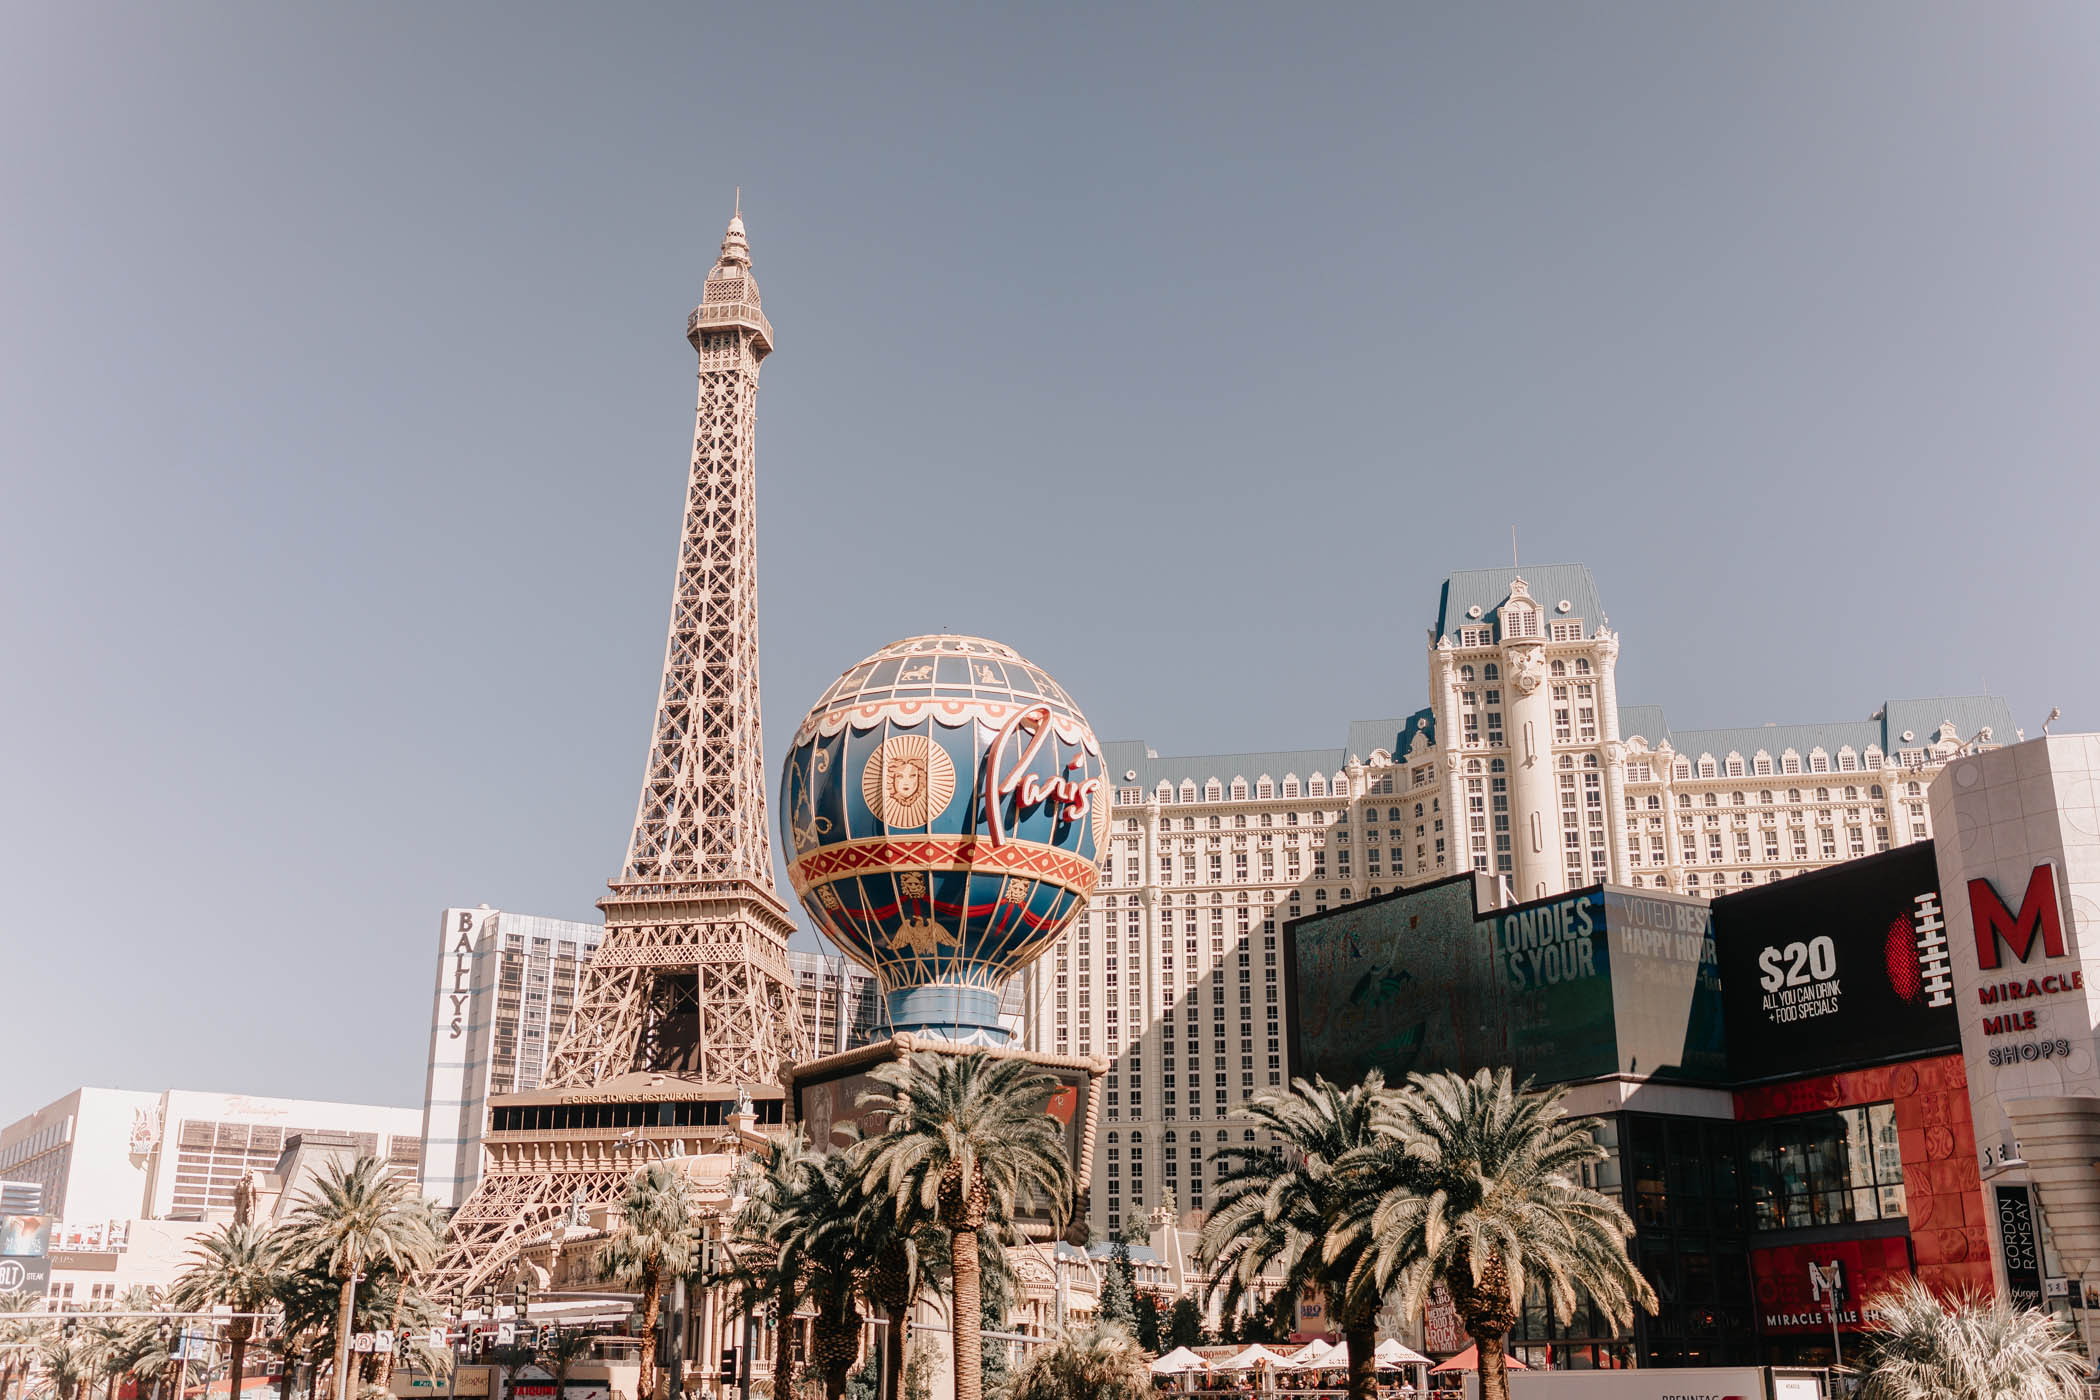 Las Vegas - Fun things to do if you don't gamble or party. Include day trips from Las Vegas, Museums, best shows in Vegas, and more